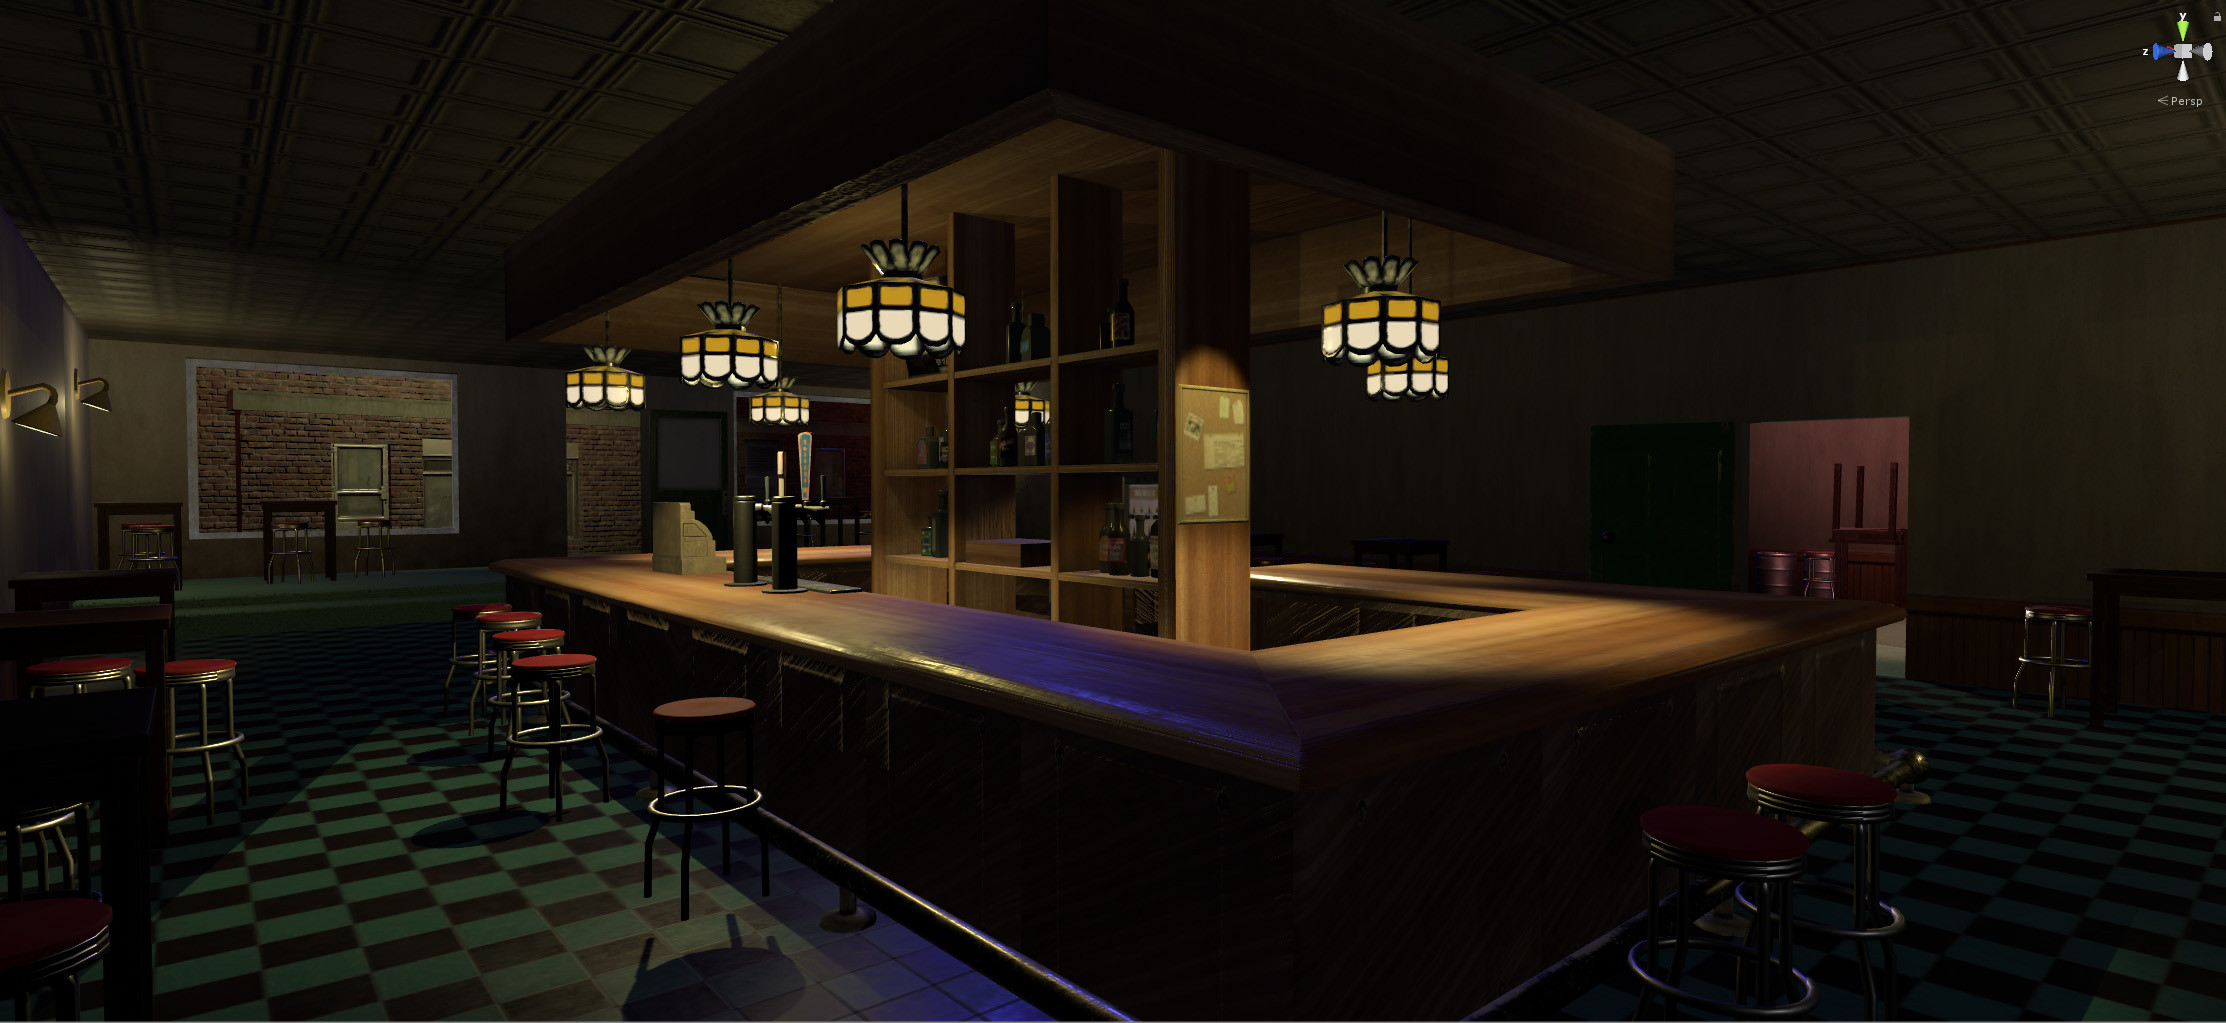 Modeling, texturing and lighting.